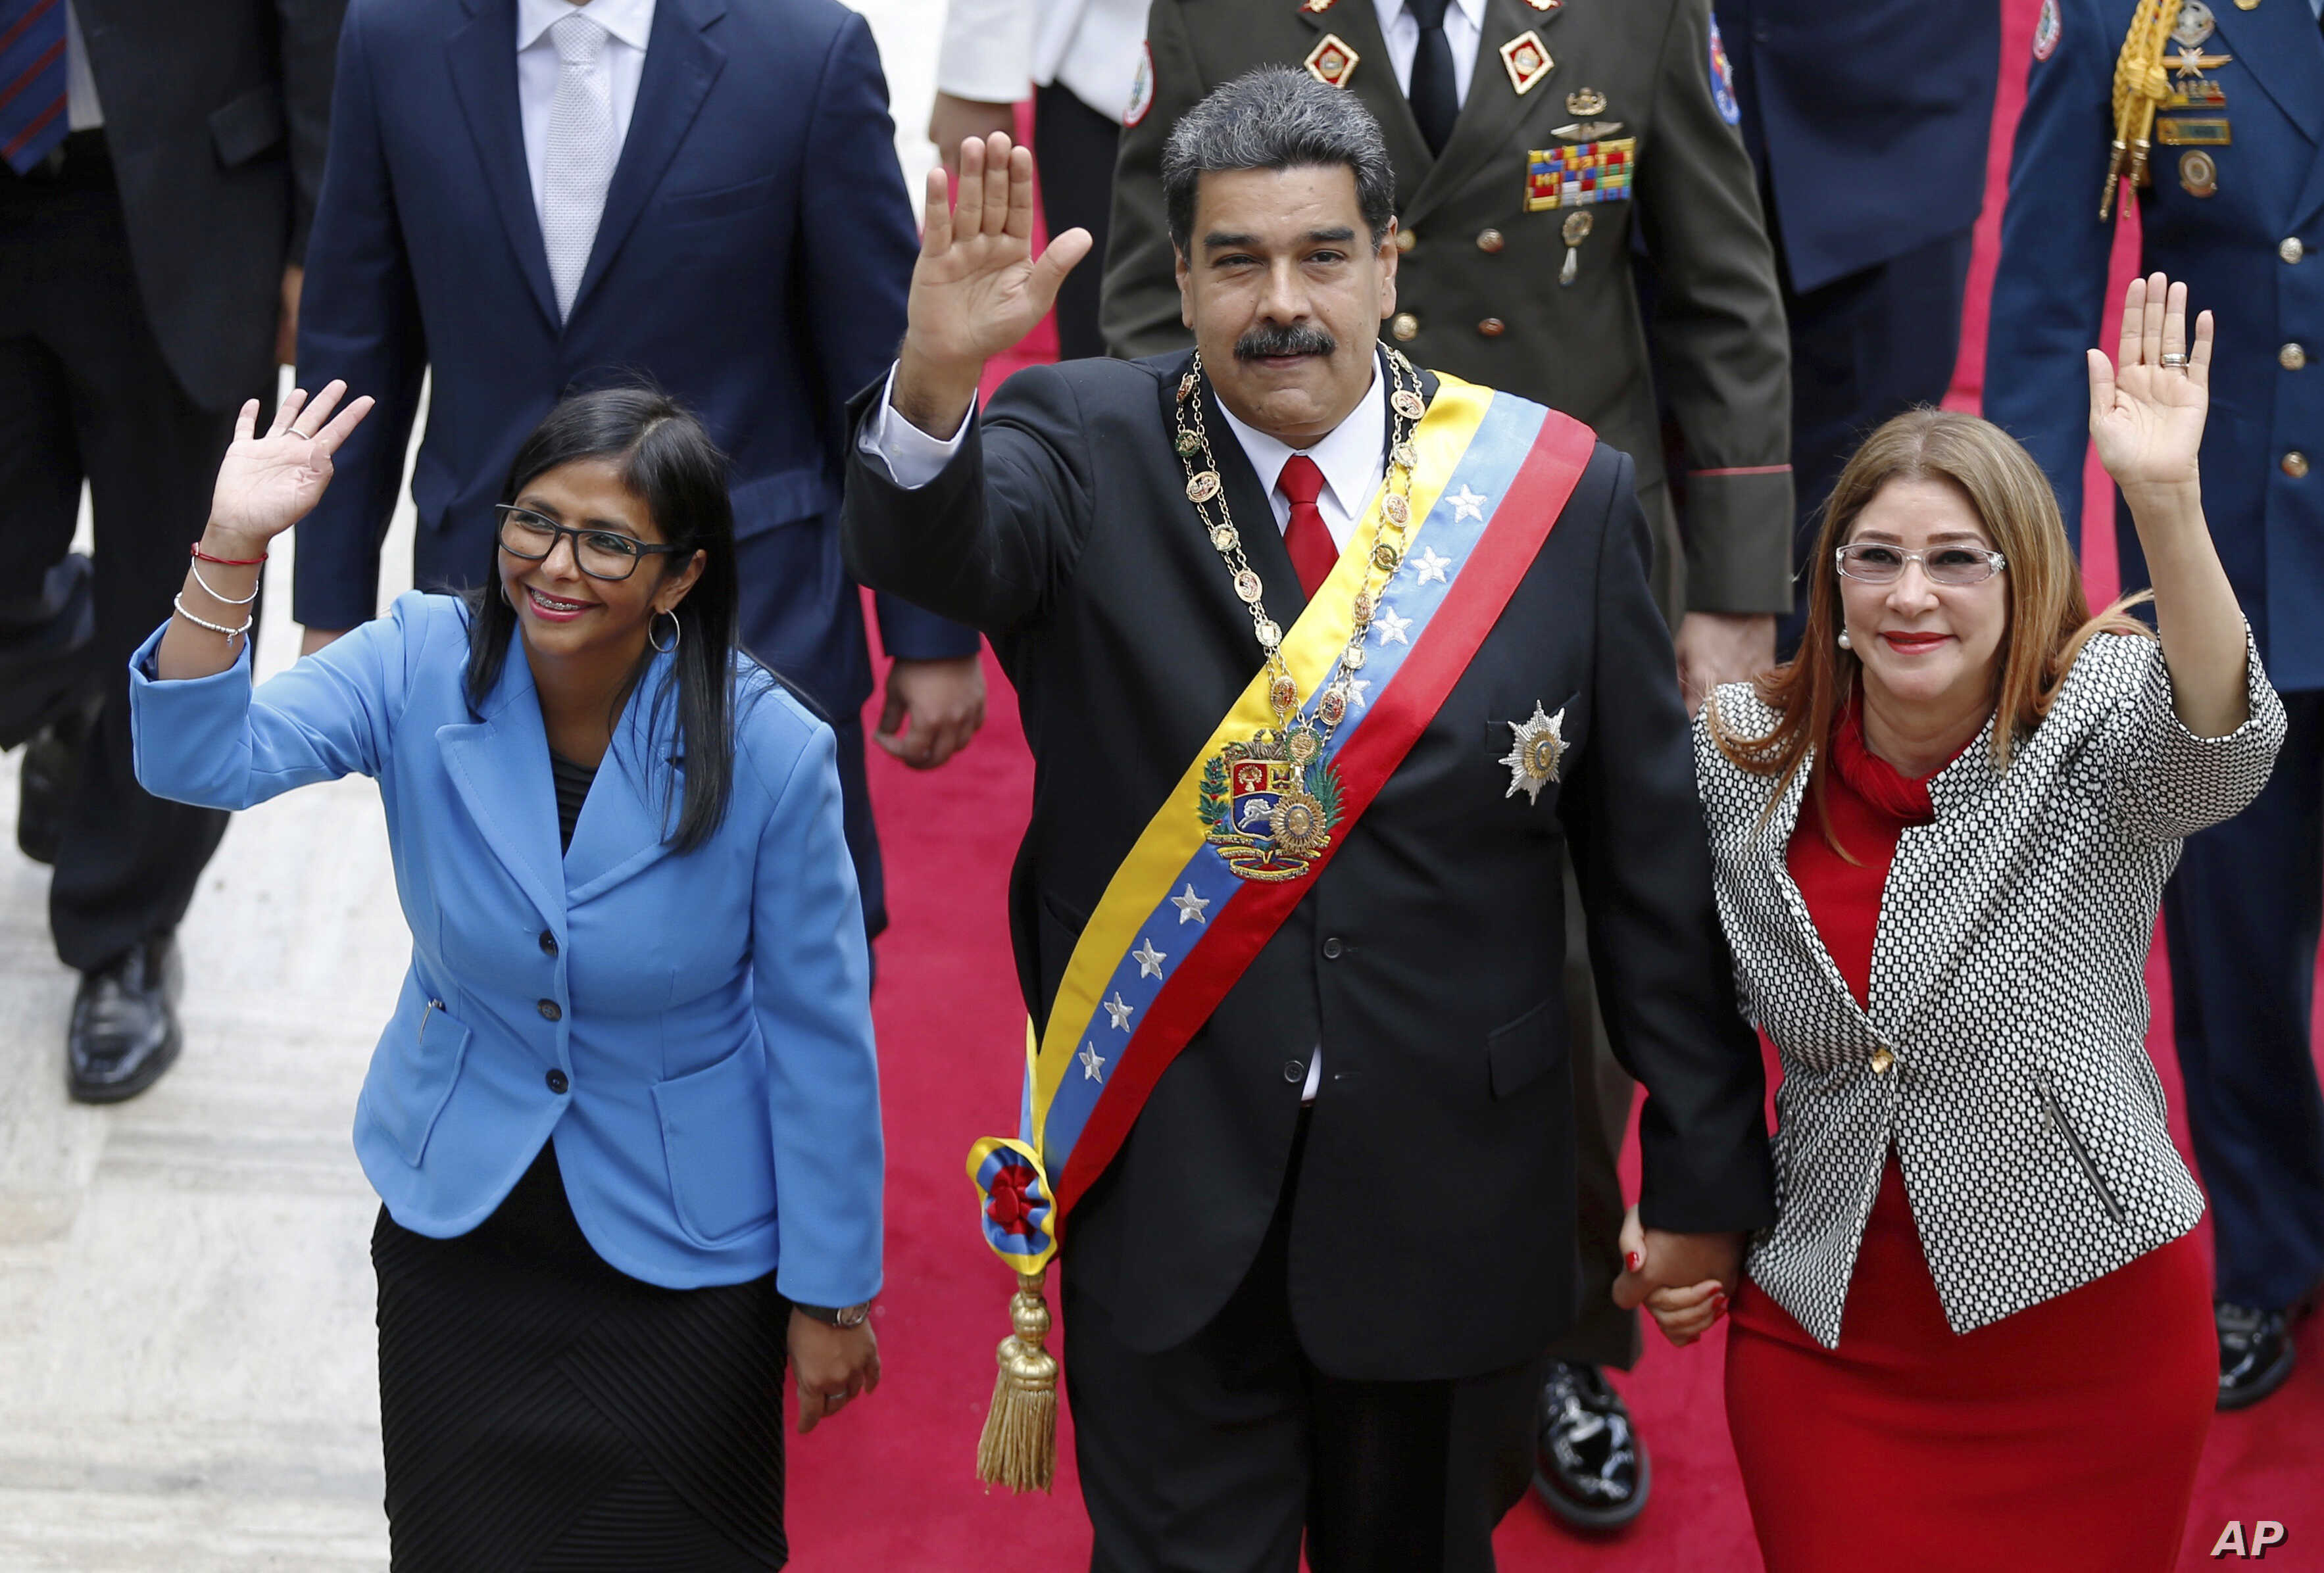 FILE - Venezuela's President Nicolas Maduro, then Constituent National Assembly President Delcy Rodriguez, left, and first lady Cilia Flores, wave as they arrive to the National Assembly, in Caracas, Venezuela, May 24, 2018.